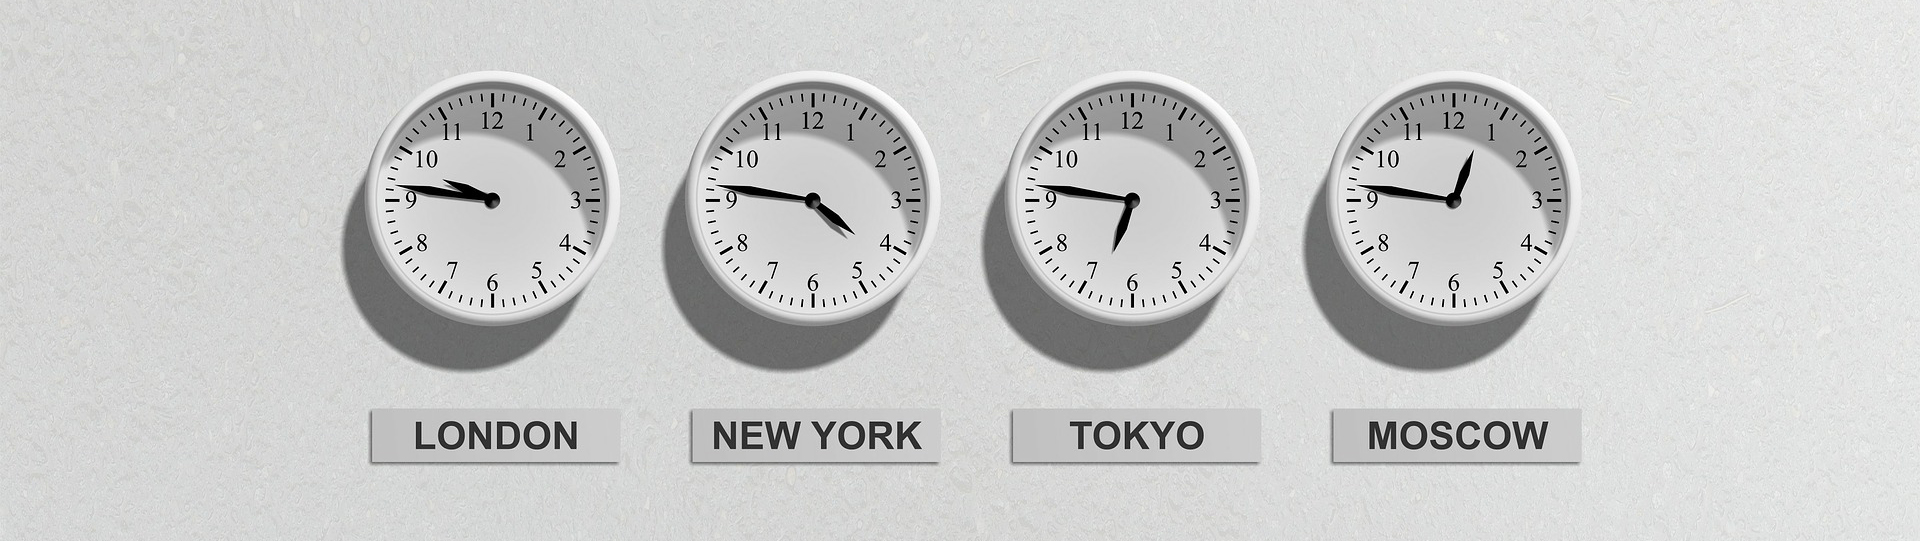 Image of clocks showing international time zones.